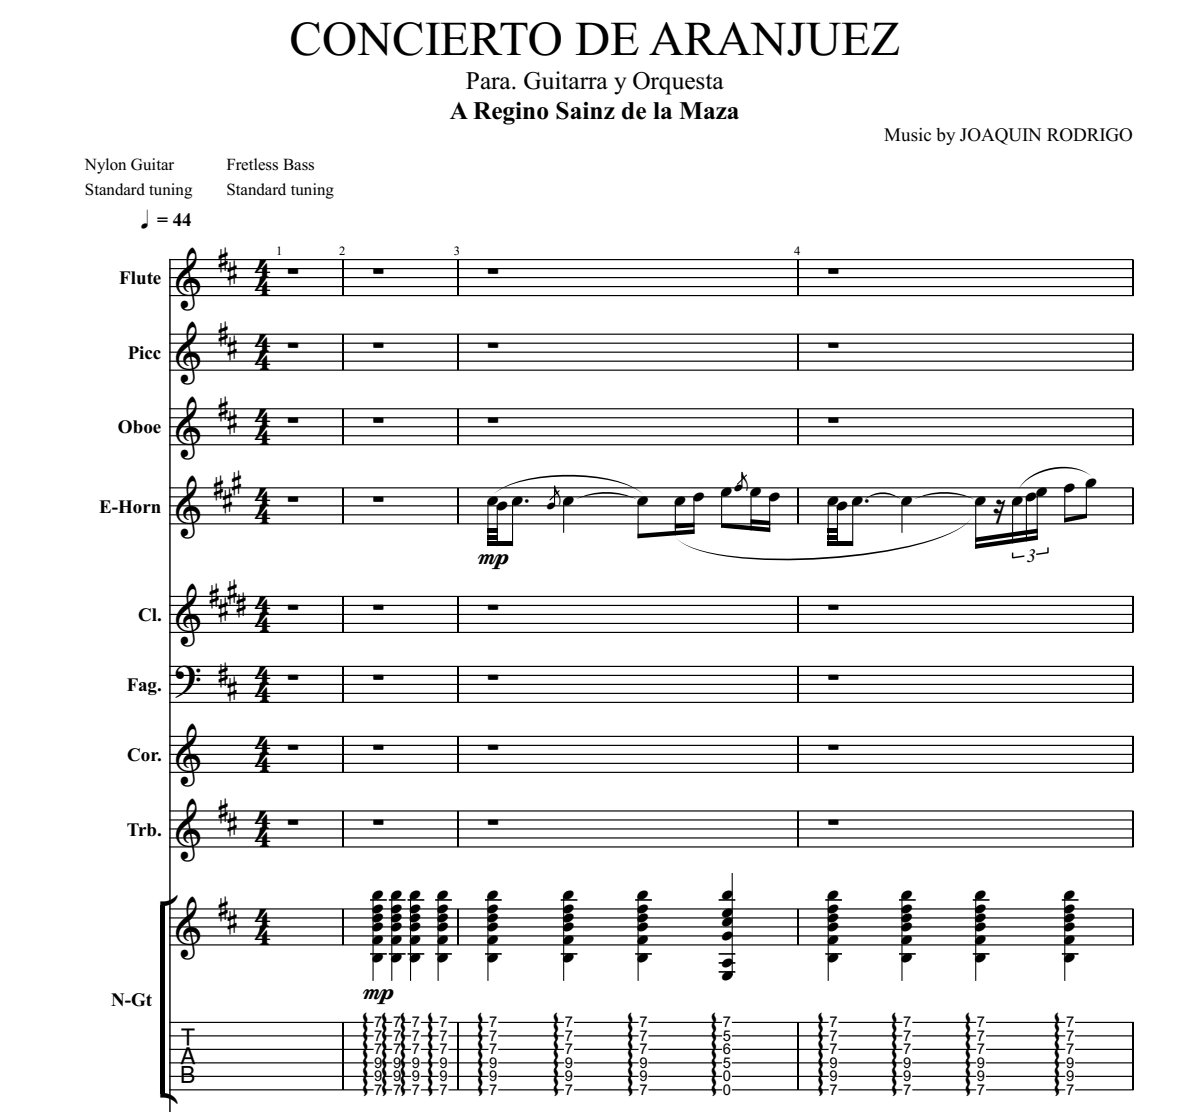 Concierto De Aranjuez Part Ii Adagio For Guitar Guitar Sheet Music And Tabs